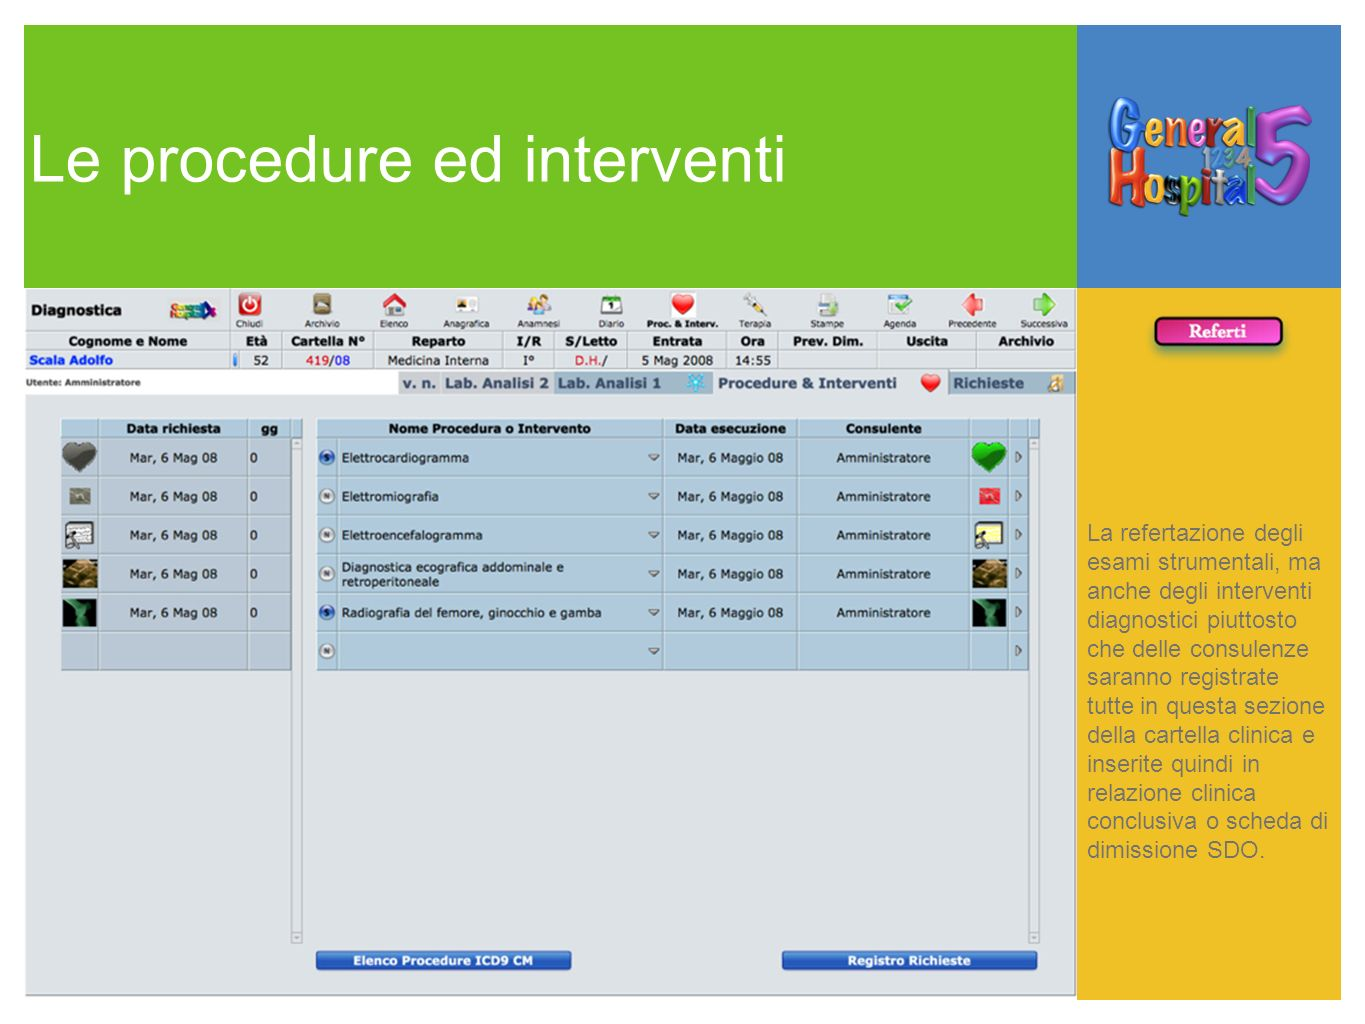 Le procedure ed interventi